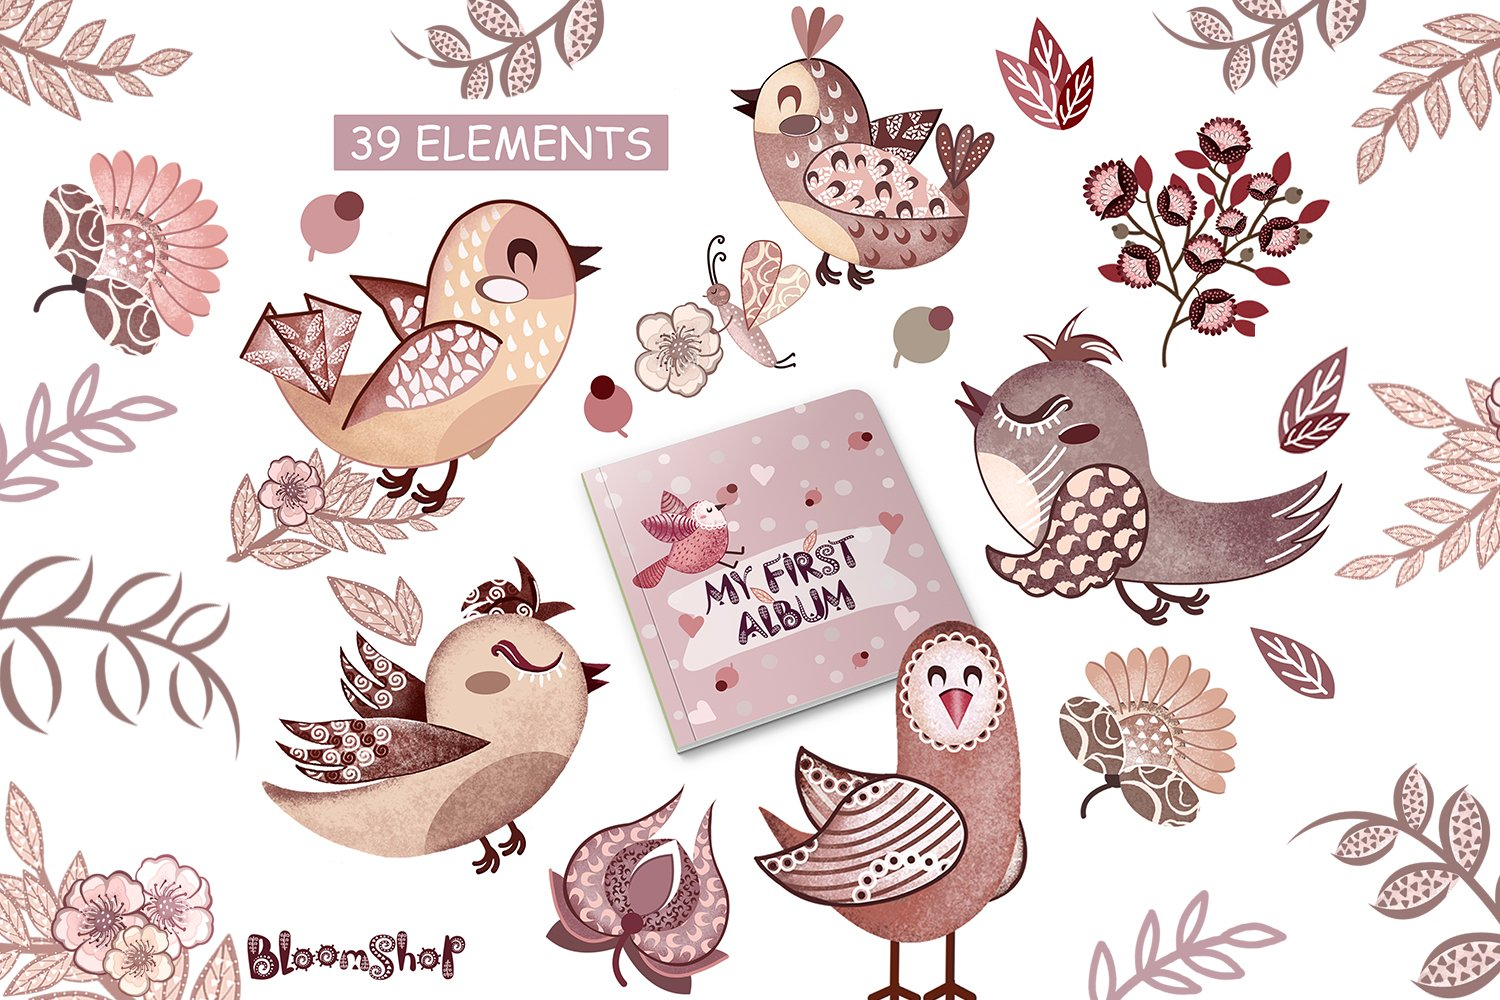 Cute birds with flowers clipart, Pink birds, burgundy flower example image 2